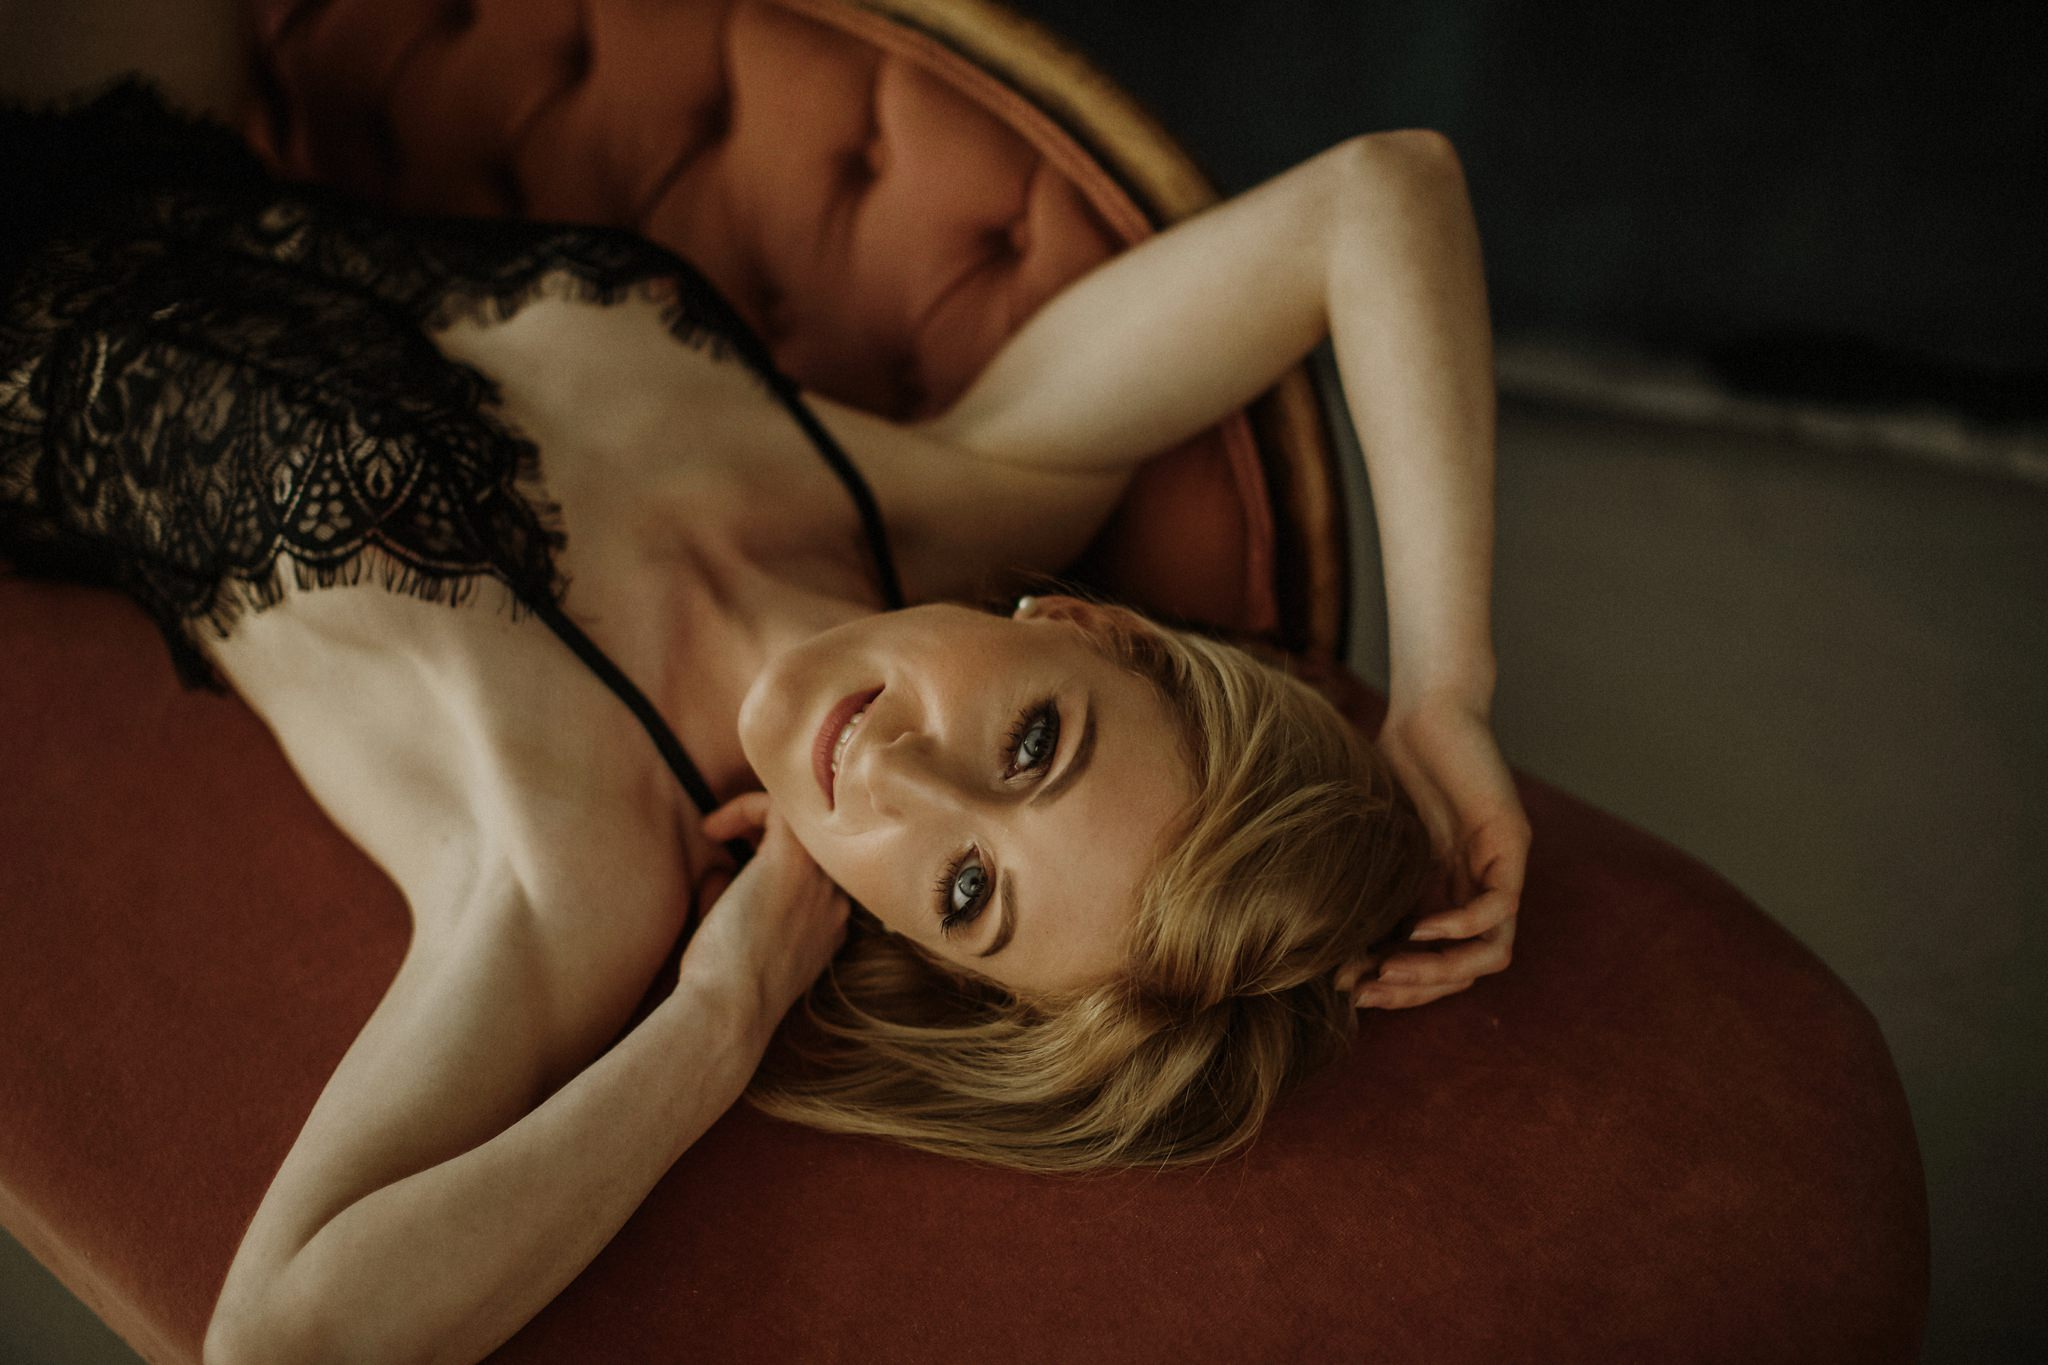 Sheffield_Boudoir_Photography_0030.jpg